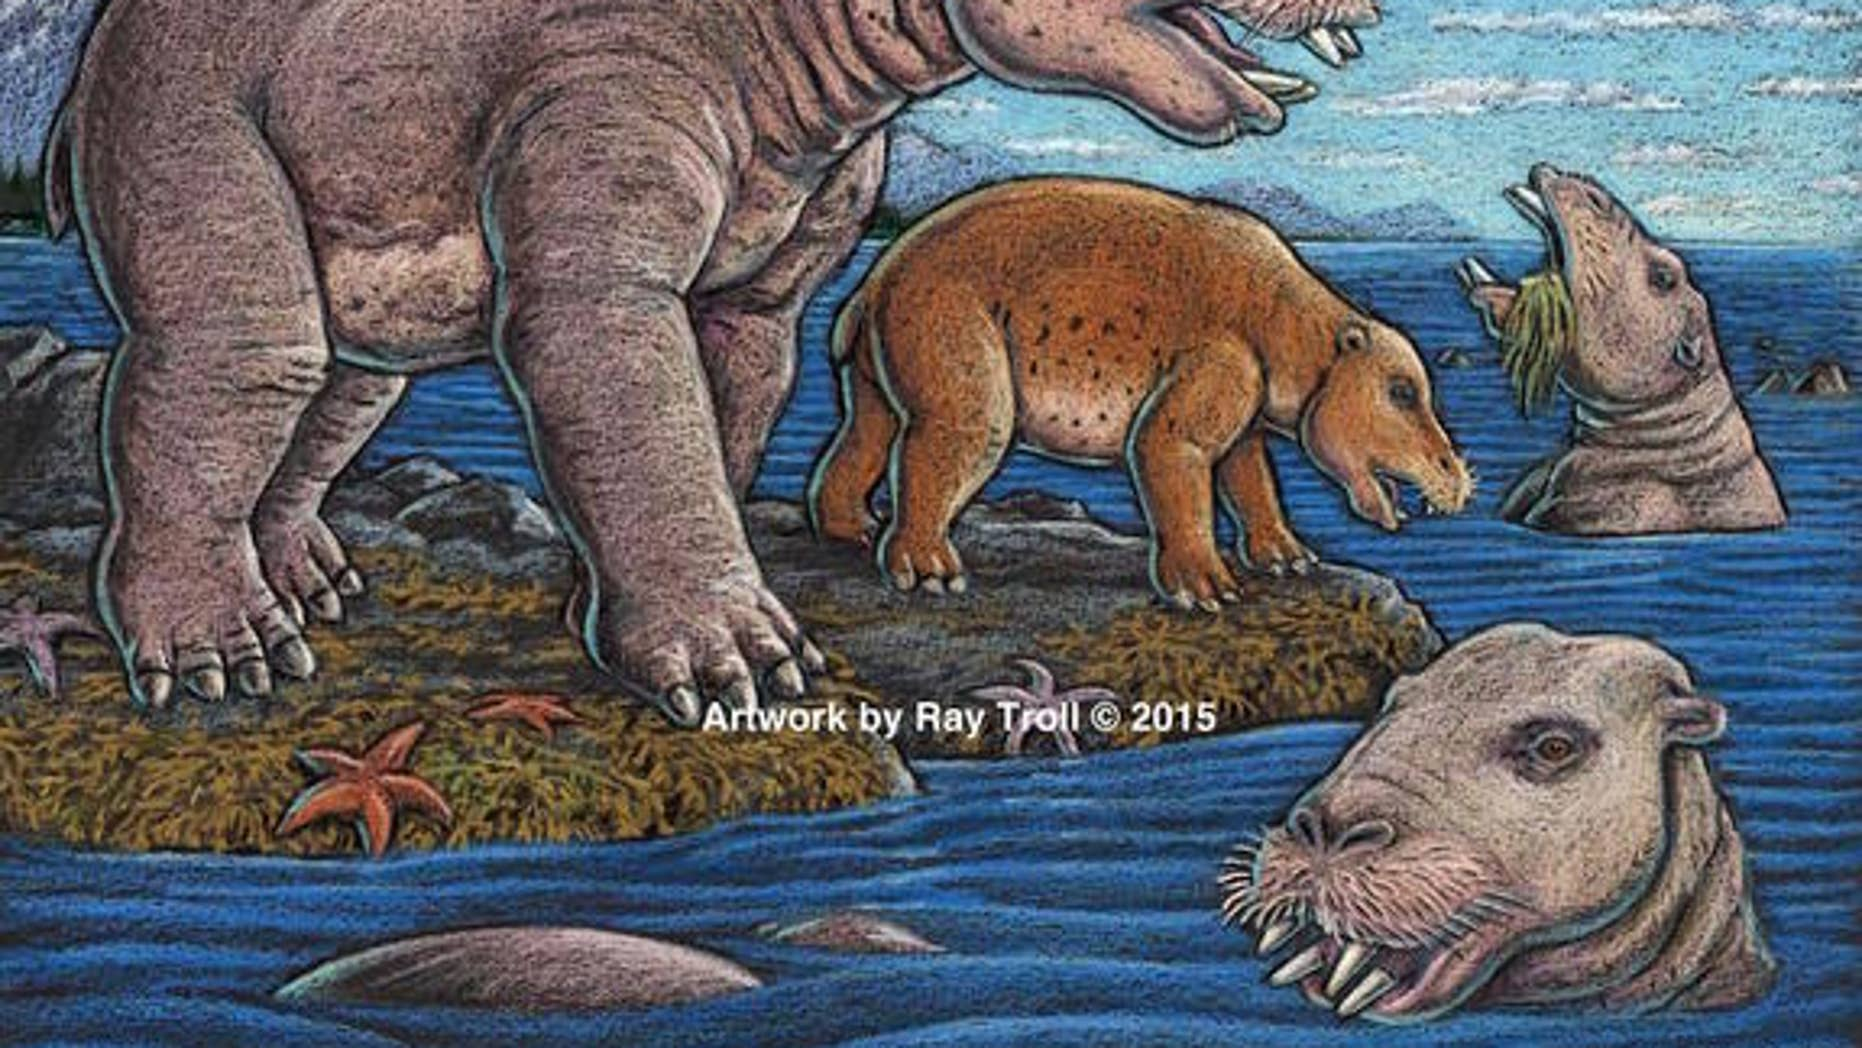 An illustration of the newfound species of hippopotamus-size mammals from Unalaska that suction-fed on shoreline vegetation.